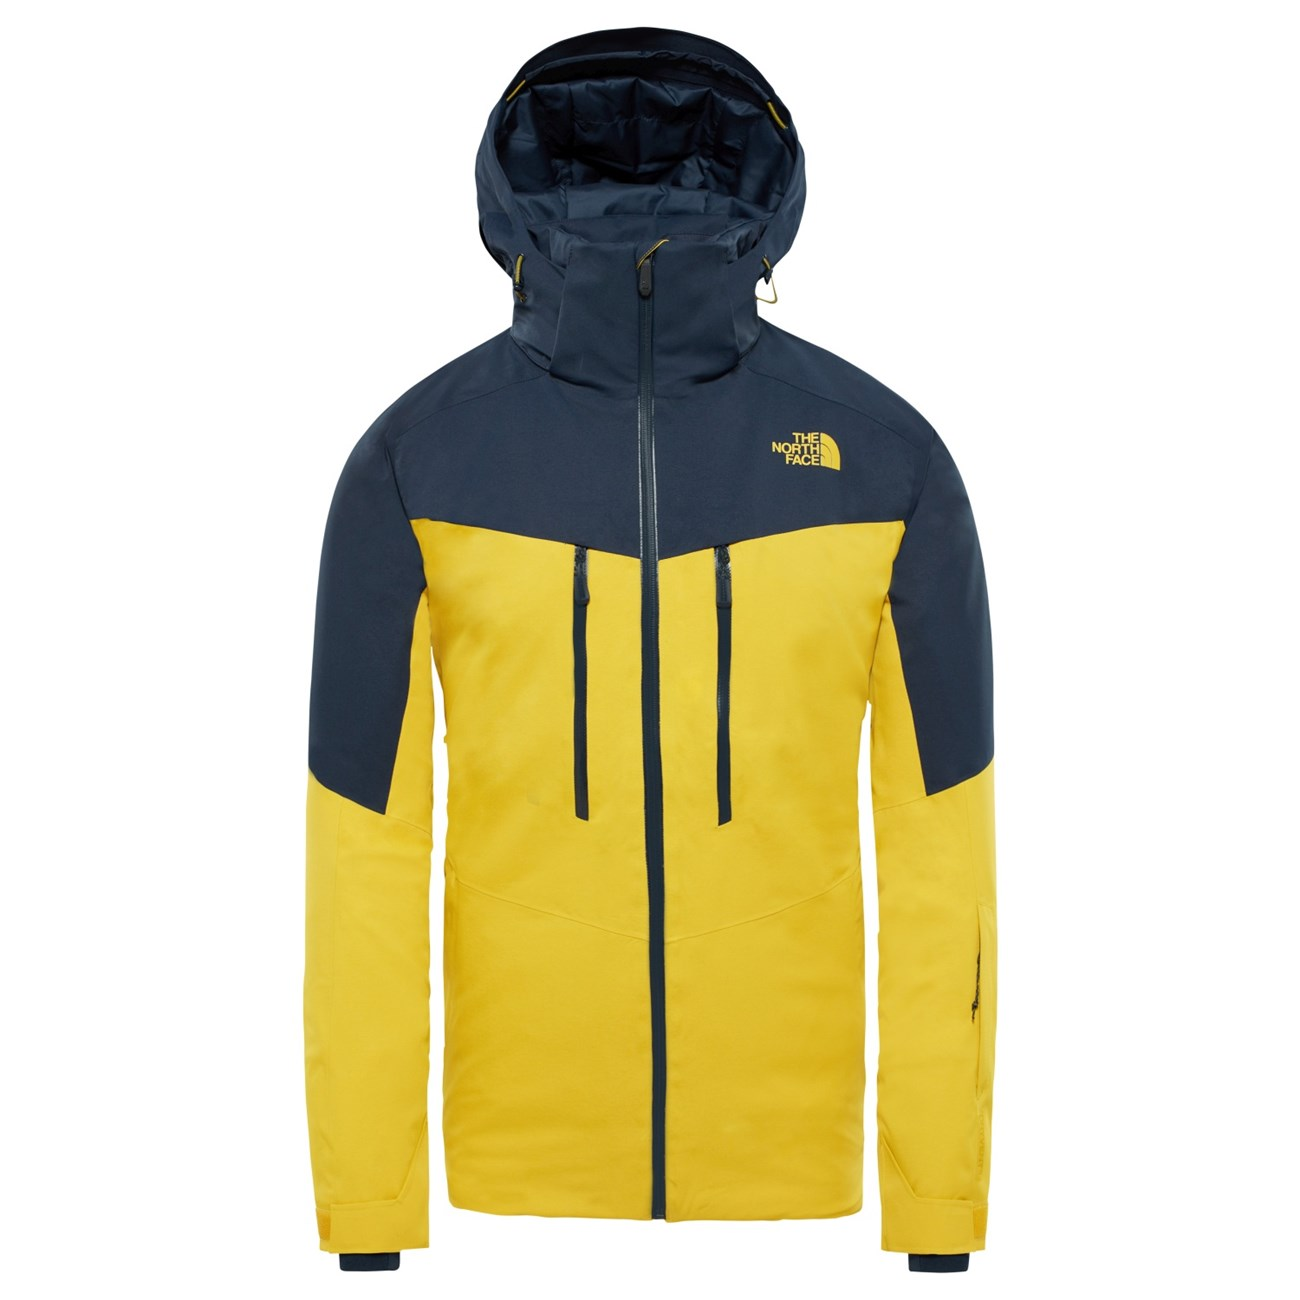 edc96fc39387 1; 2. Κωδικός Intersport: 2210043380; Κωδικός THE NORTH FACE: T93IFZ